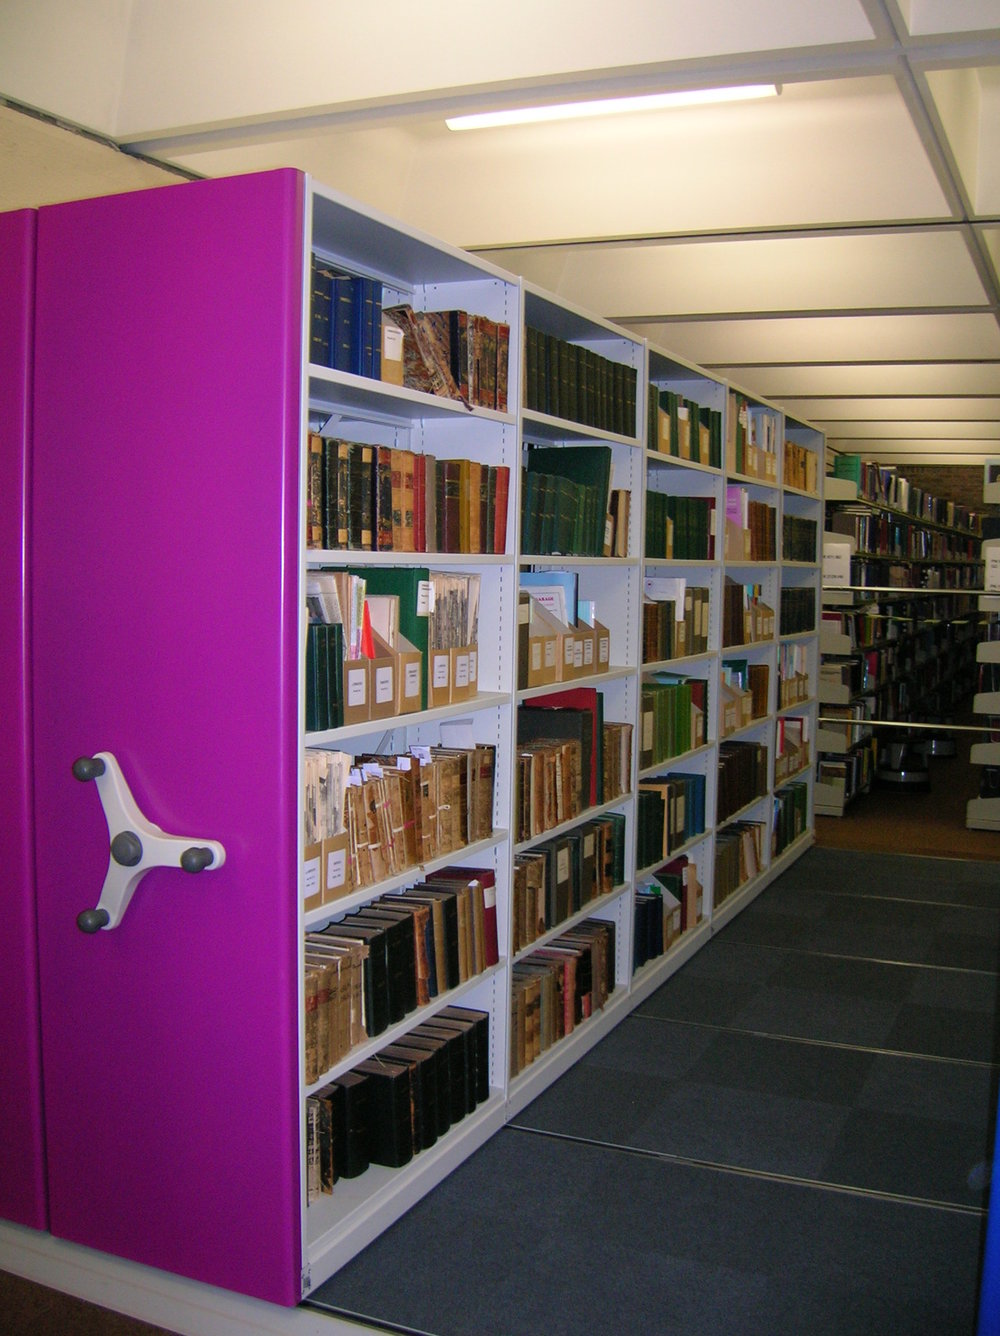 HighDensityLibrary.JPG